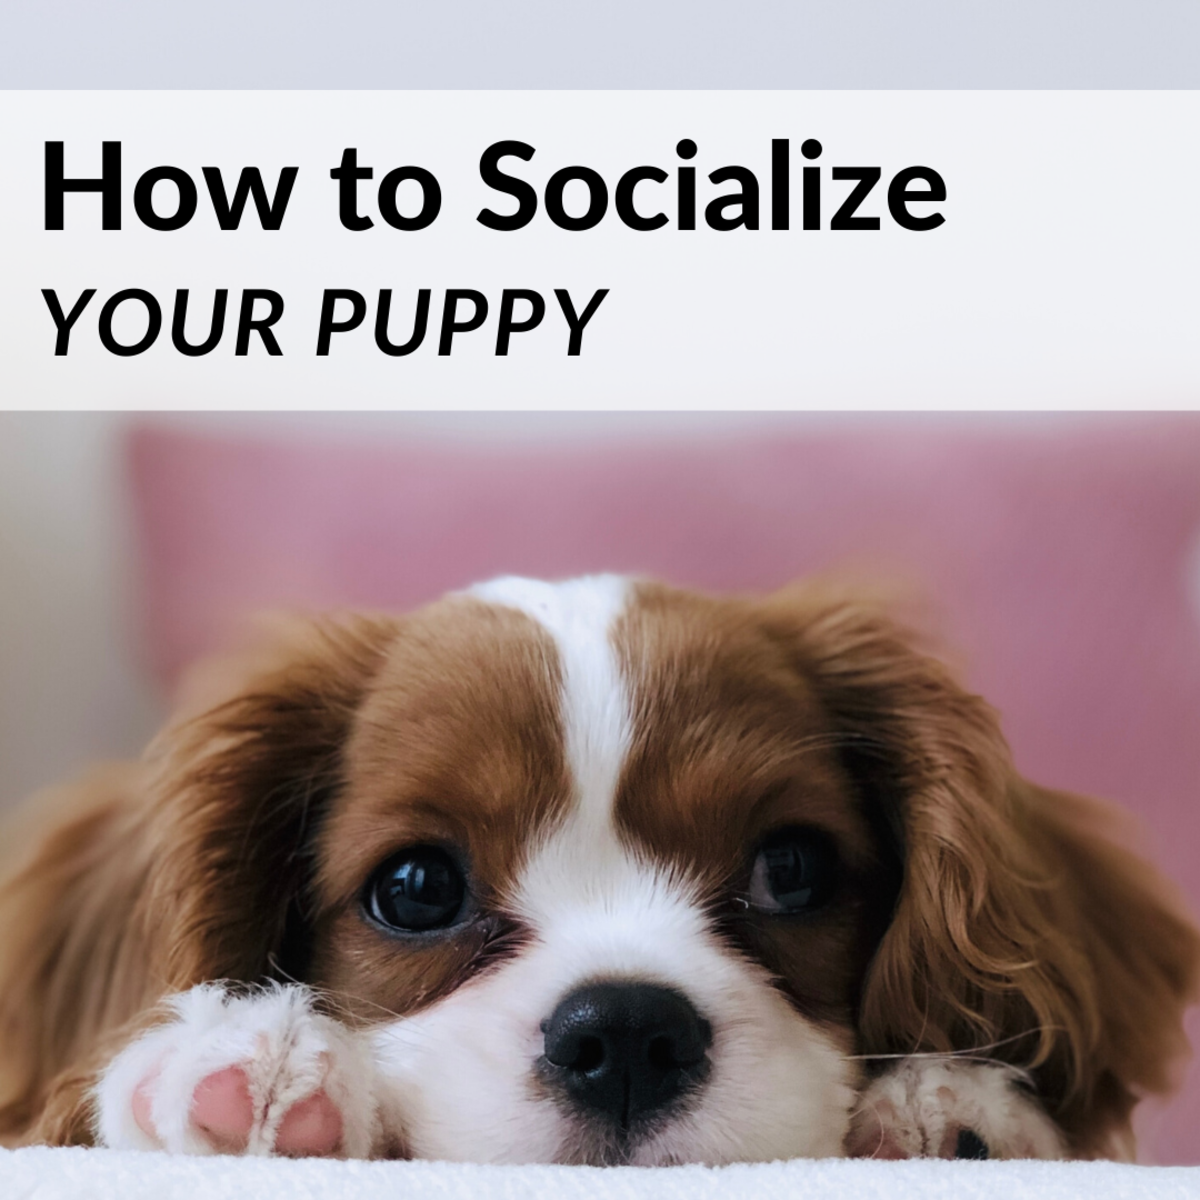 Tips for How to Socialize Your Puppy